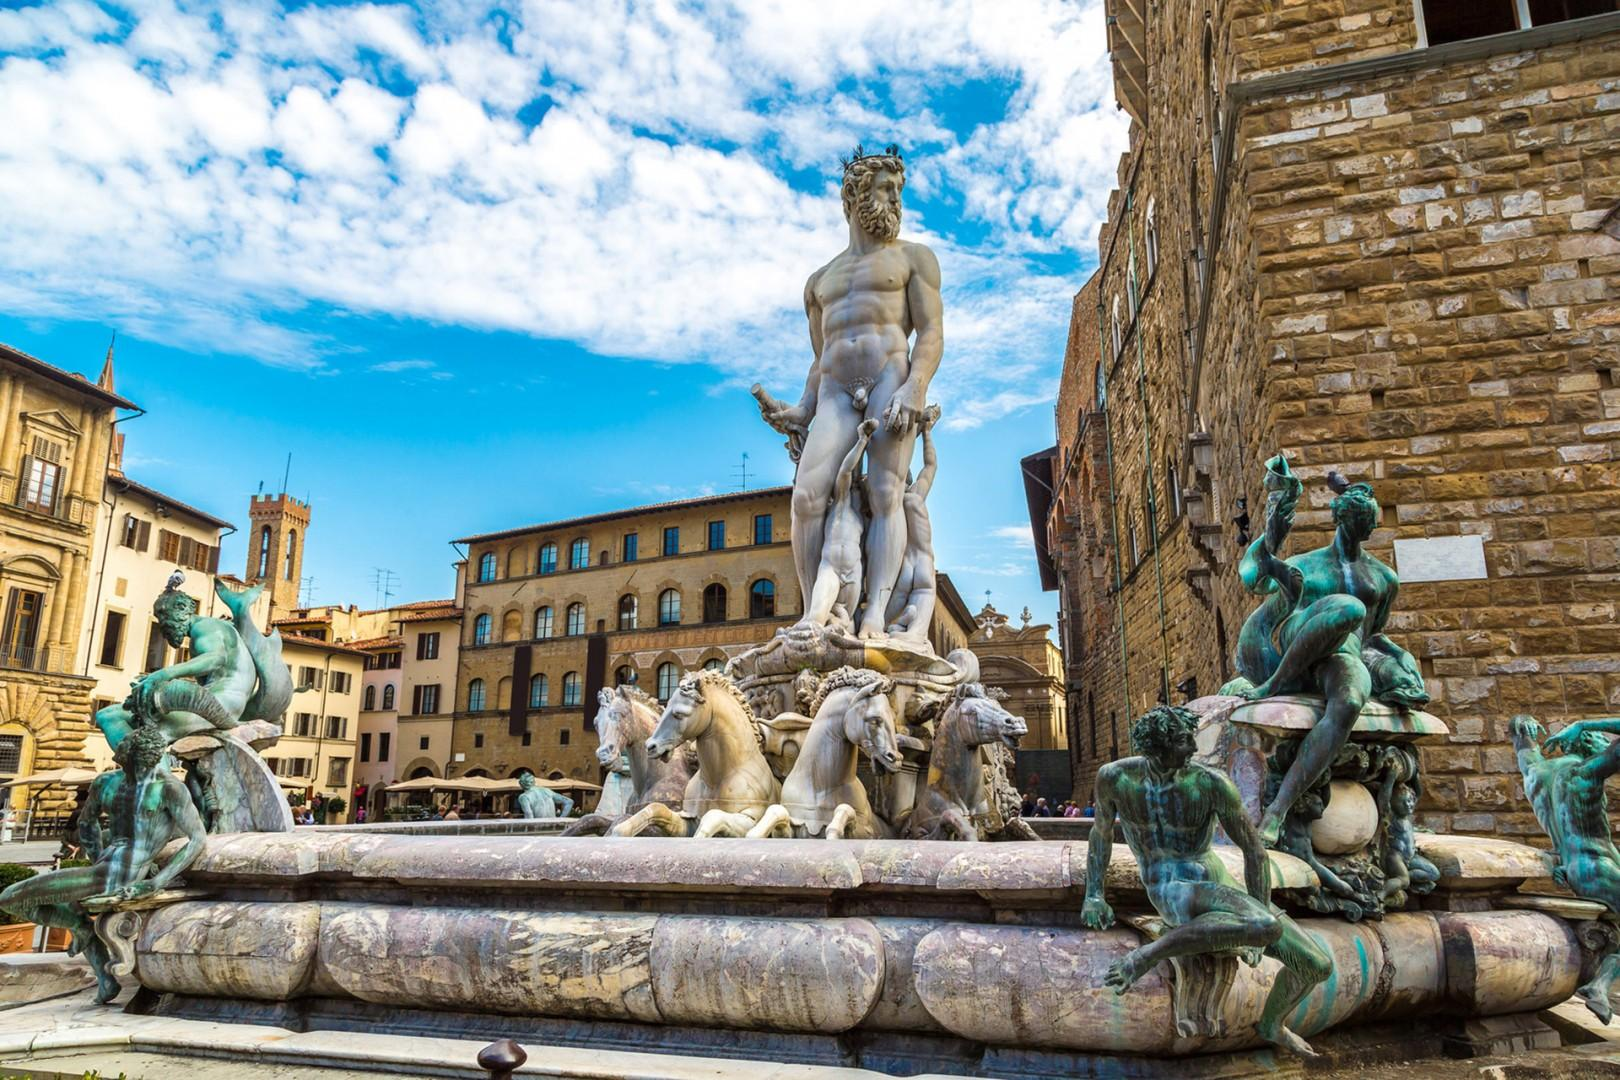 Sculptures delight all around in this piazza. This fountain celebrates first running water in 1565.